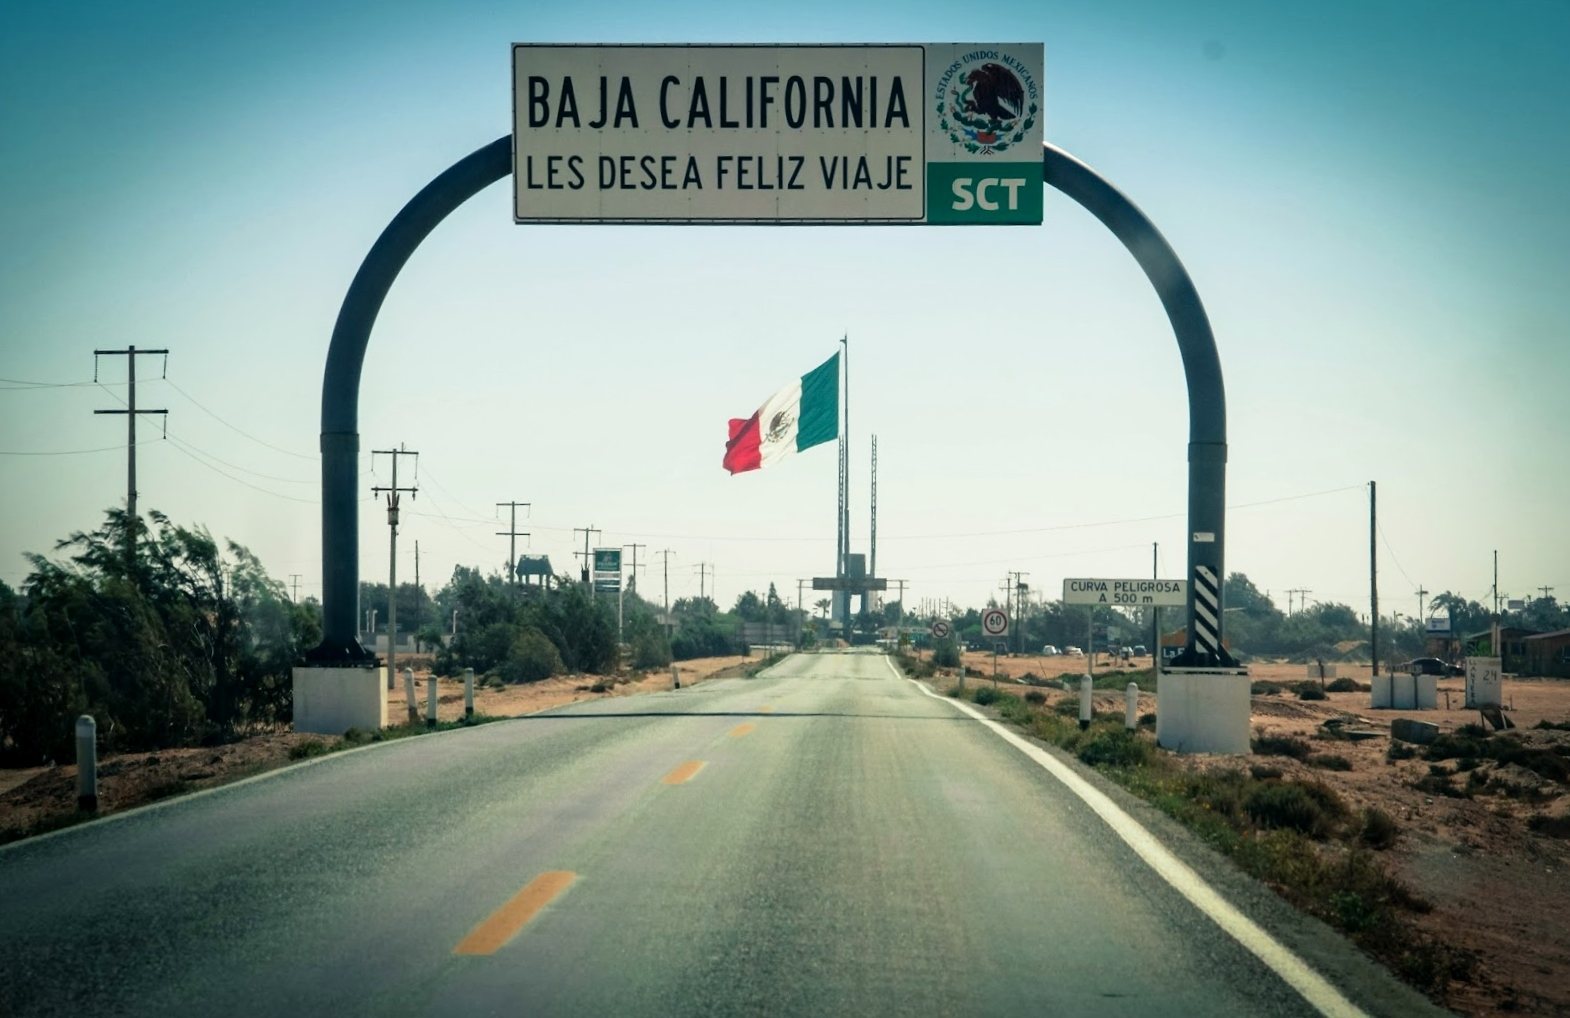 The port of entry for Baja California Sur, at Guerrero Negro. (photo by D. Speredelozzi)